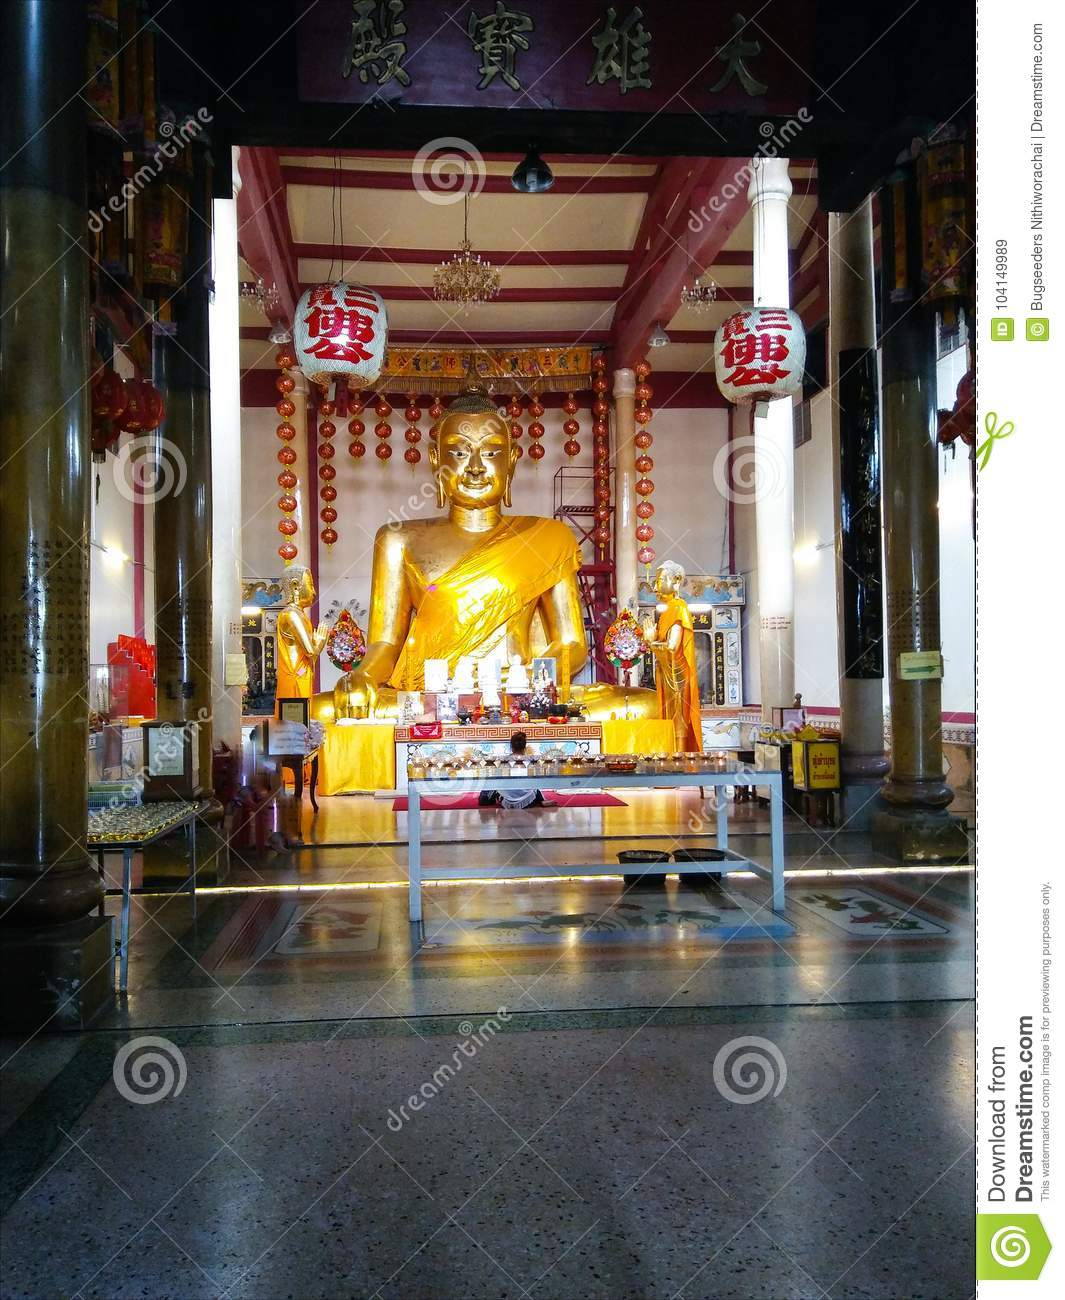 Golden Buddha And Disciples Statue In Templeinese Langue Is